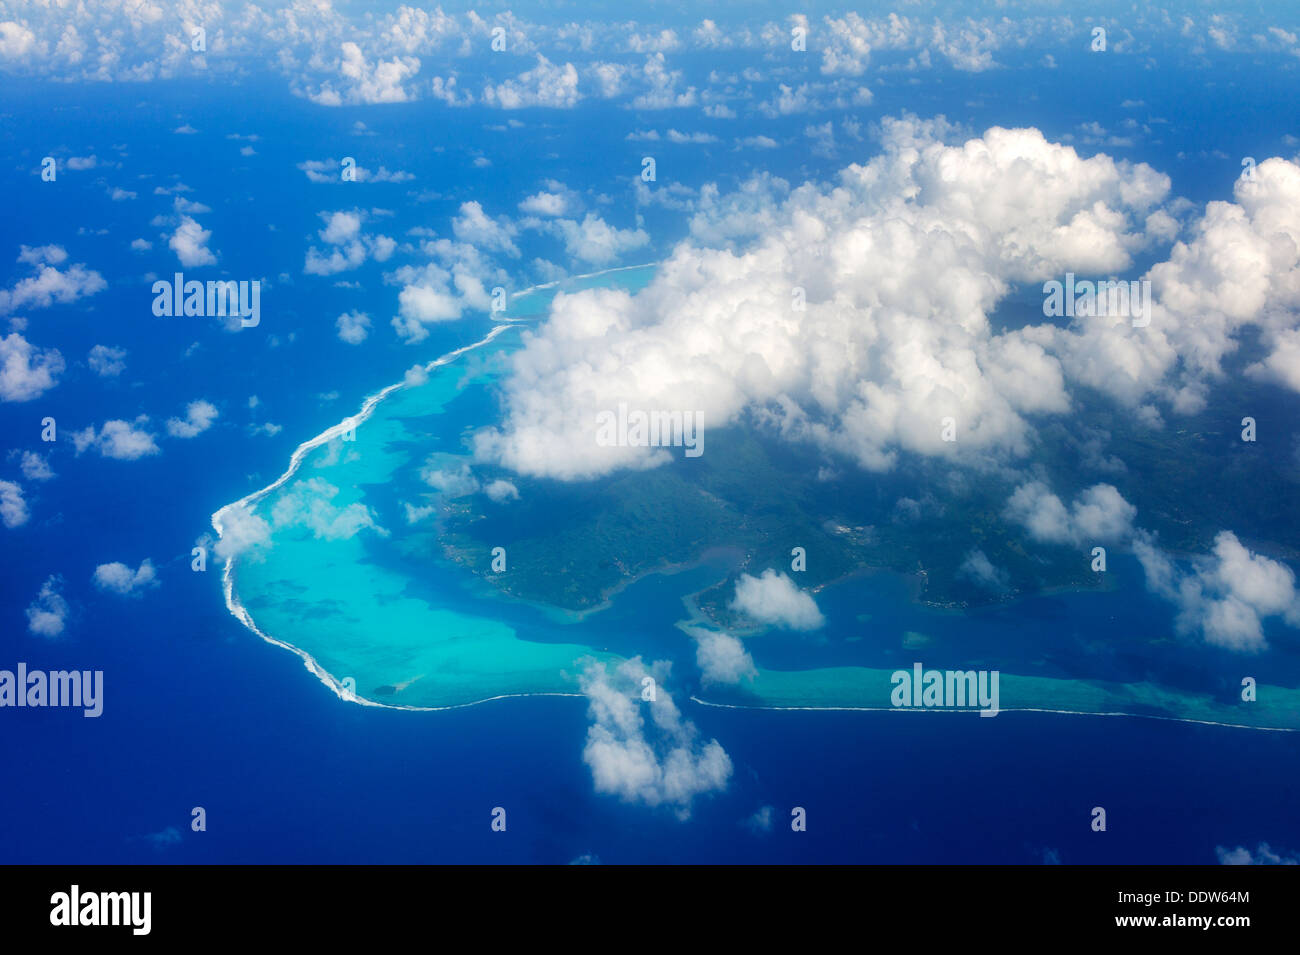 View of Raiatea from the air with clouds. French Polynesia - Stock Image